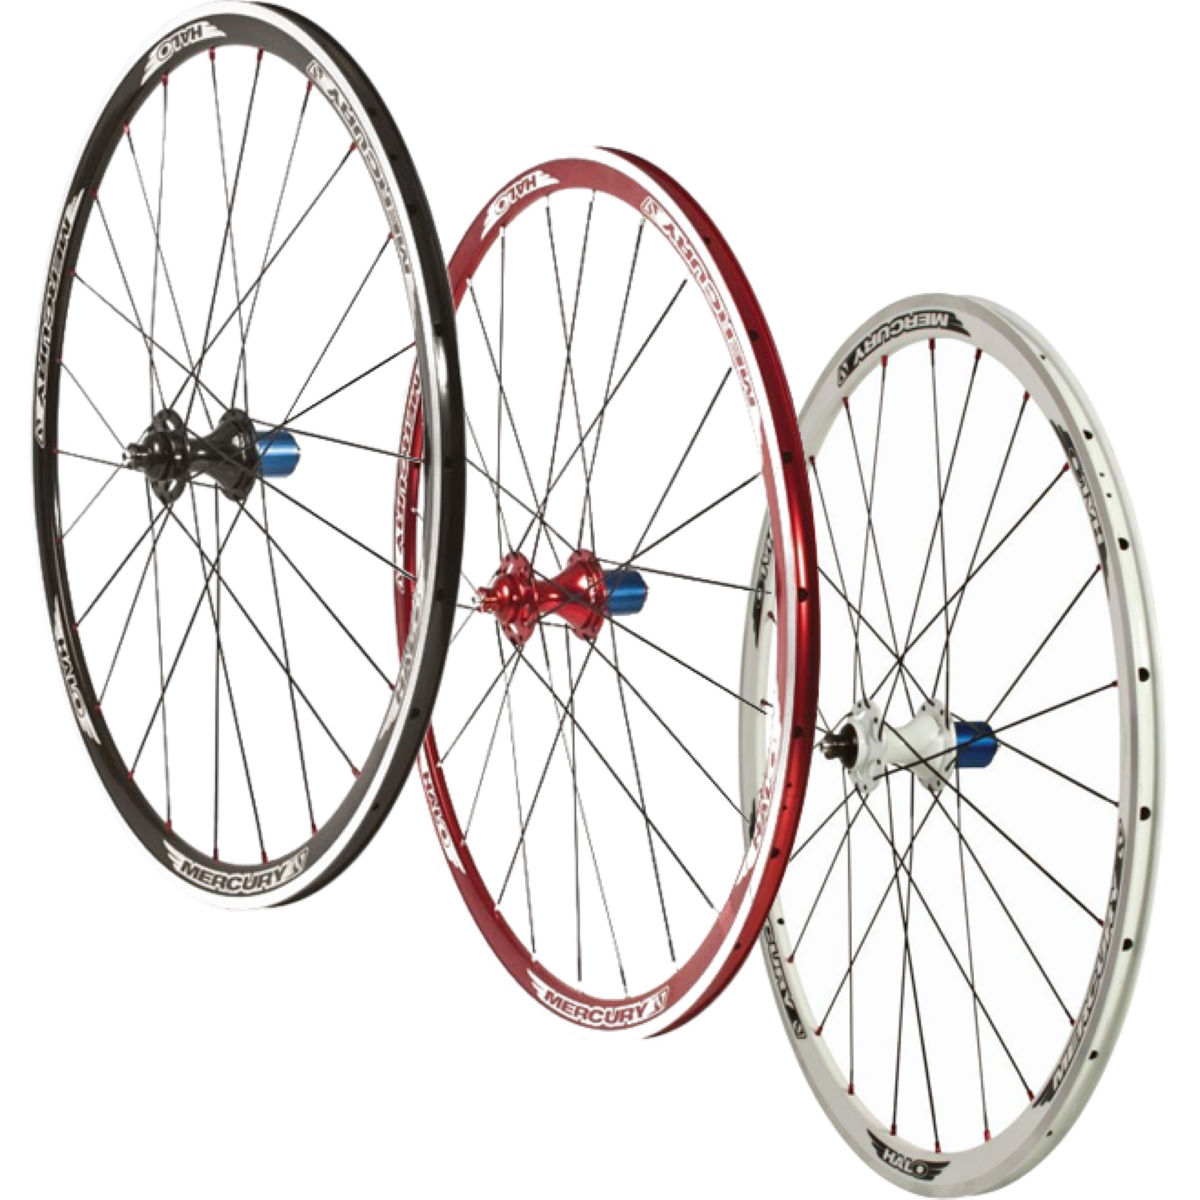 Halo Mercury Aero Race Clincher Rear Wheel